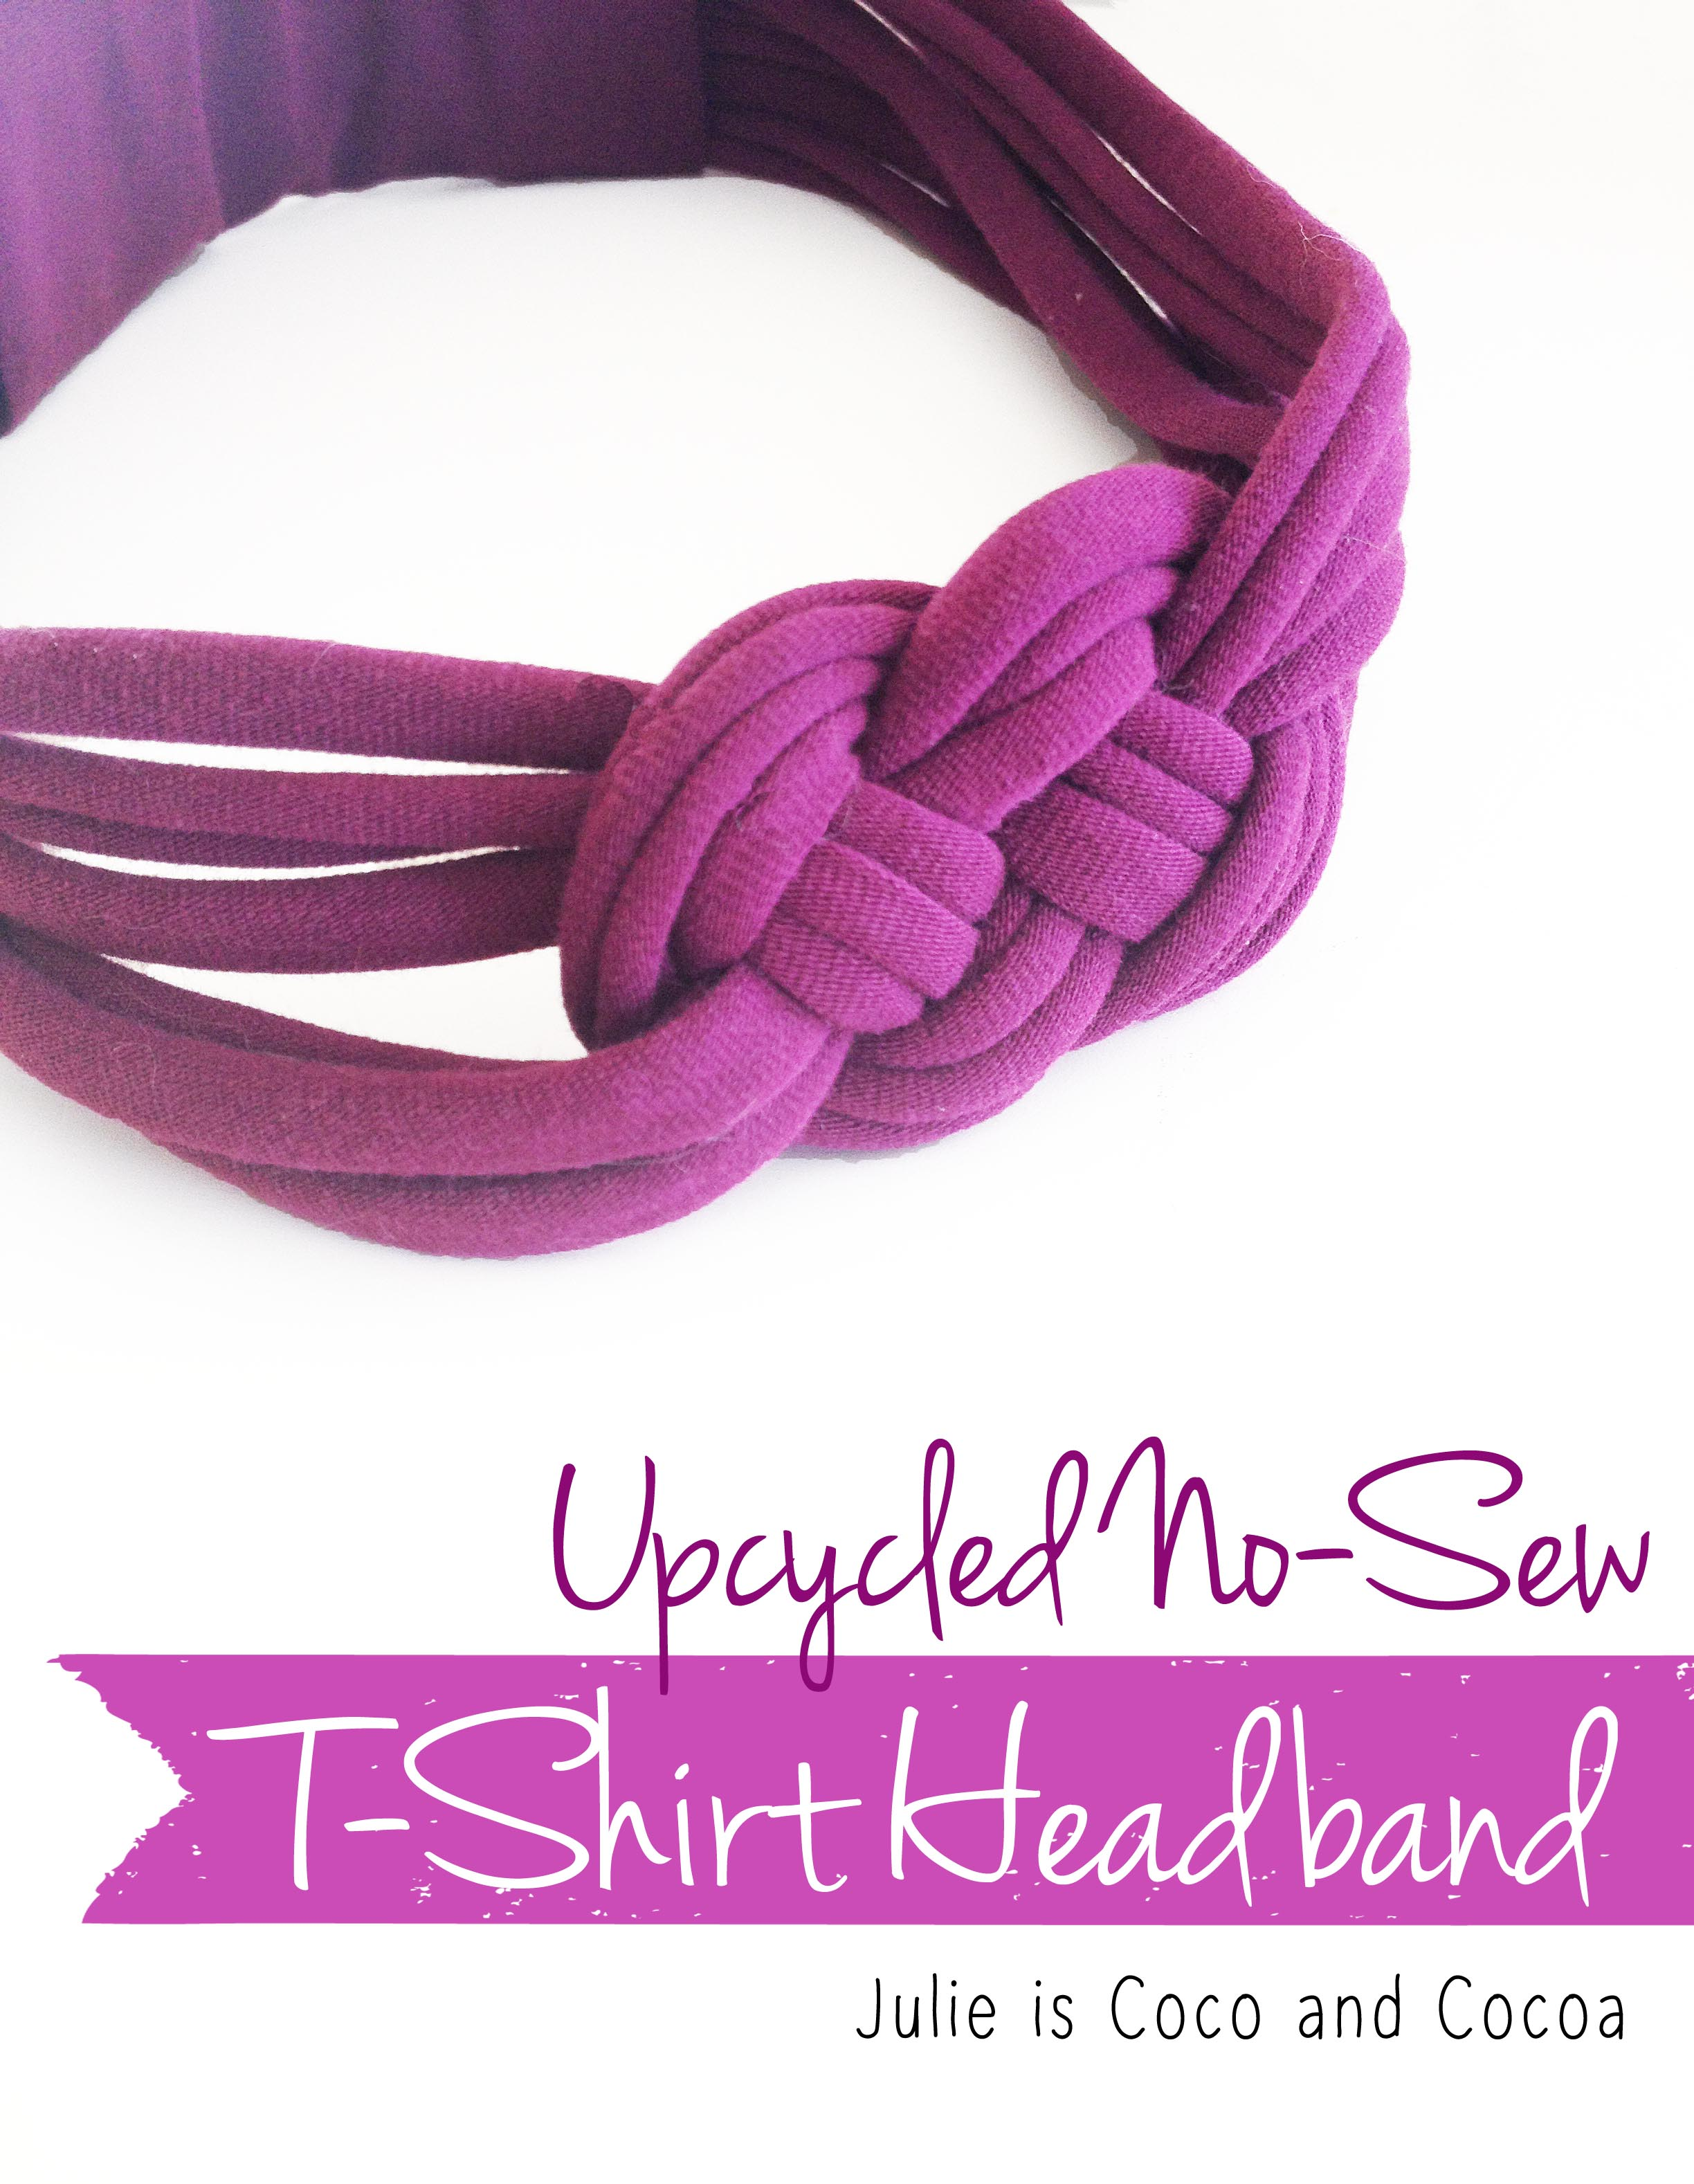 Upcycled No Sew Knotted T Shirt Headband